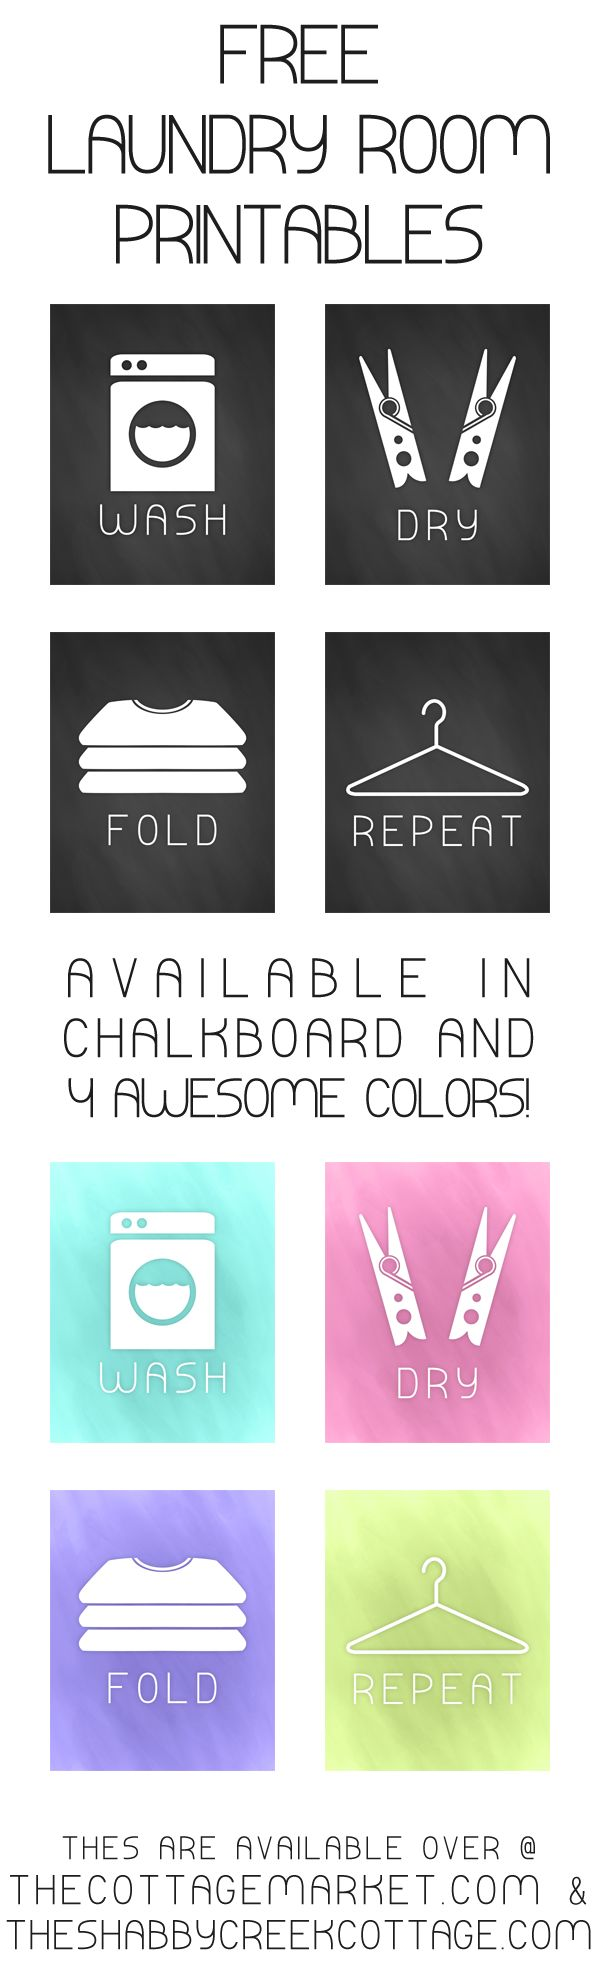 FREE laundry art prints (monthly printable) - available in chalkboard plus four other colors